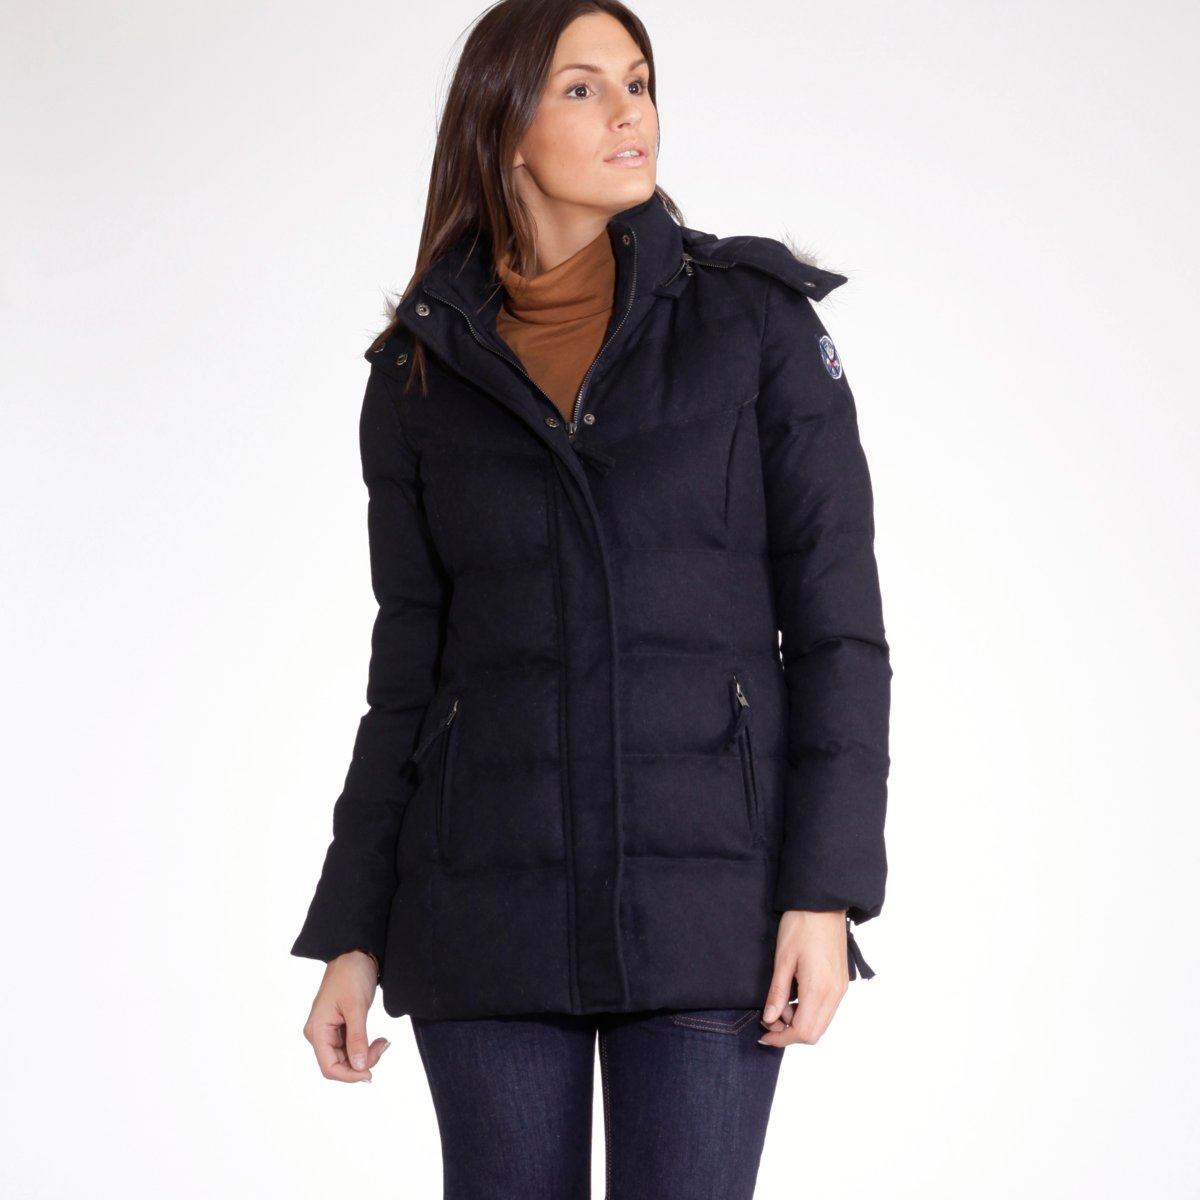 LEDU-2013 new hooded ladies ' detachable jacket GH621